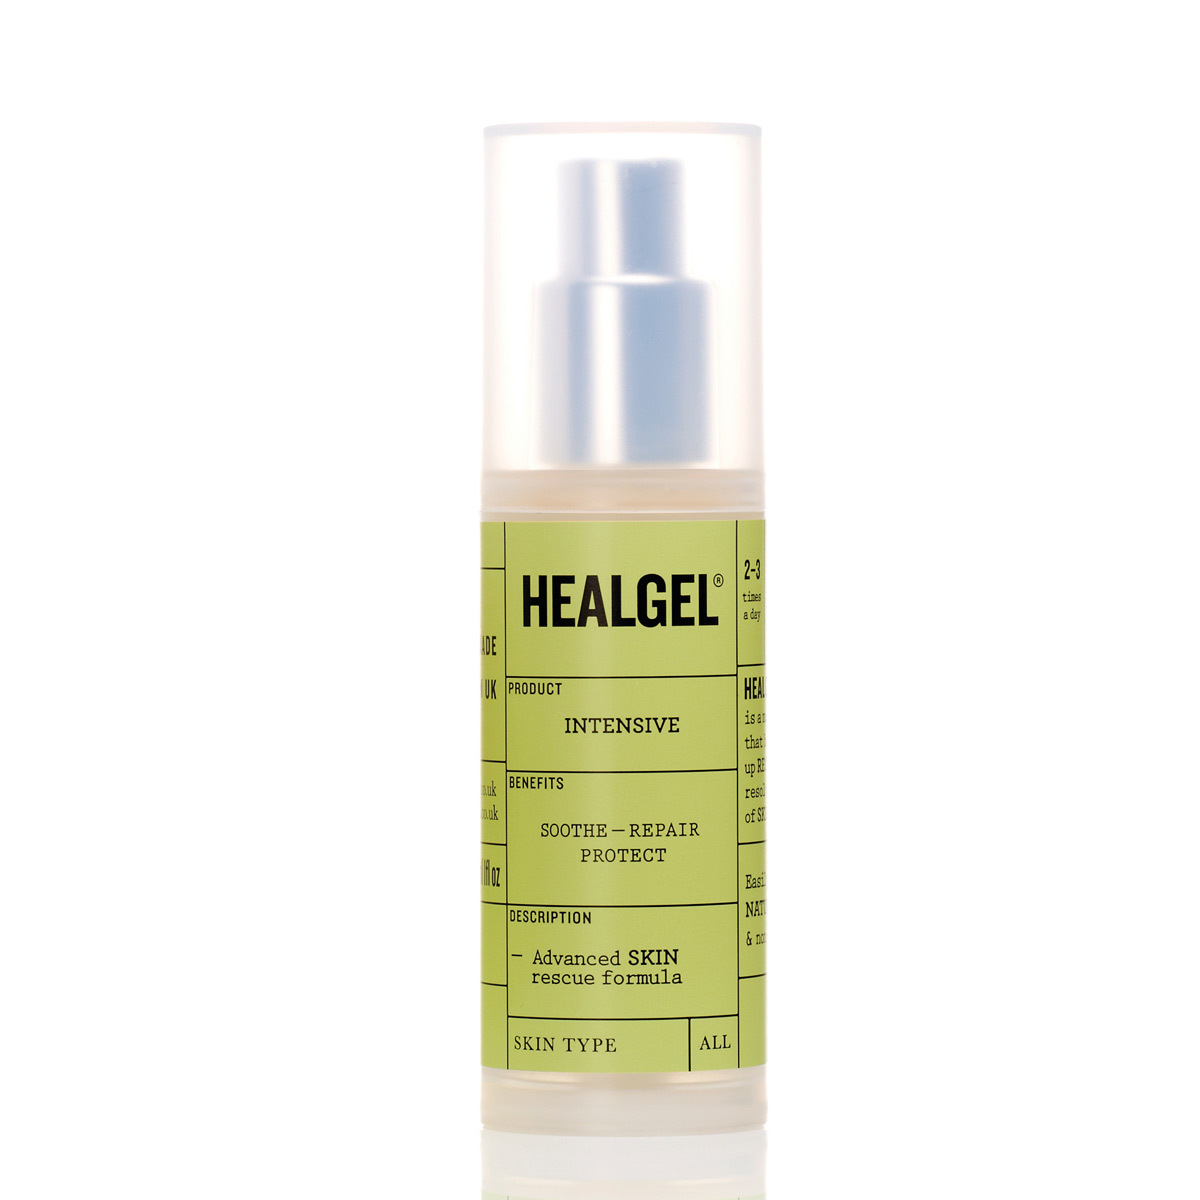 Serum Intensive de Healgel